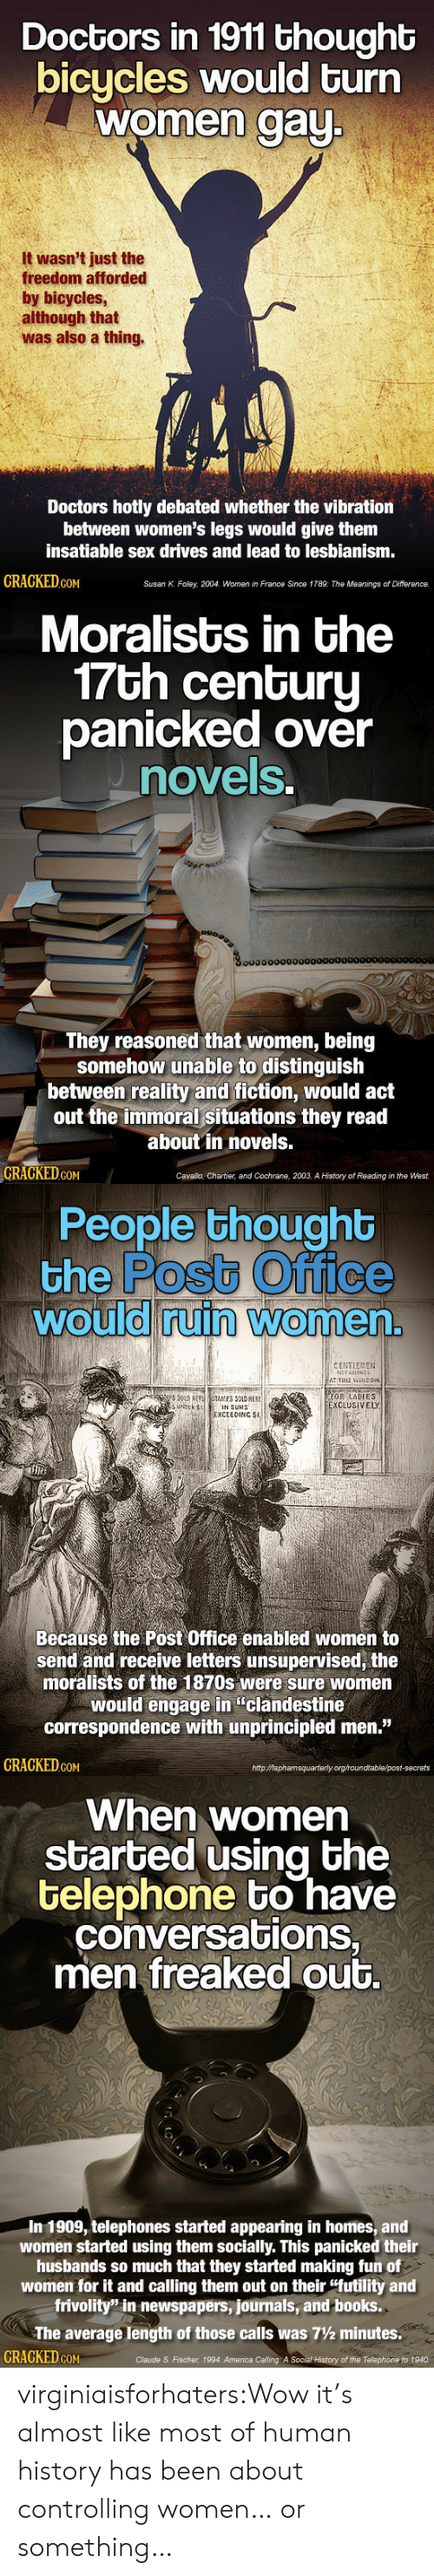 "America, Books, and Post Office: Doctors in 1911 thought  bicycles would turn  women aU  It wasn't just the  freedom afforded  by bicycles  although that  was also a thing.  Doctors hotly debated whether the vibration  between women's legs would give them  insatiable sex drives and lead to lesbianism  GRAGKED GoM  Susan K. Foley, 2004, Women in France Since 1789: The Meanings of Difference.   Moralists in the  7Gh cenGuru  panicked over  novels  0o000000000  They reasoned that women, being  somehow unable to distinguish  between reality and fiction, would act  out the immoral situations they read  about in novels.  GRAGKED.GOM  Cavallo, Chartier, and Cochrane, 2003. A History of Reading in the West.   People thoughb  the Postb Office  would ruin Women  0  0  CENTLEMENl  FOR LADIES  XCLUSİVELY  SUNDER S  IN SUMS  EXCEEDING SI  Becausé the Post Office enabled women to  send and receive letters unsupervised, the  moralists of the 1870s were sure women  would engage in ""clandestine  correspondence with unprincipled men.""  GRAGKED coM  httpMaphamsquarterly org/roundtable/post-secrets   When women  started using bhe  telephone bo have  conversations,  men freaked out.  In 1909, telephones started appearing in homes, and  women started using them socially. This panicked their  husbands so much that they started making fun of  women for it and calling them out on their ""futility and  frivolity"" in newspapers, journals, and books.  The average length of those calls was 7½ minutes.  CRACKED cON  Claude S. Fischer, 1994. America Calling: A Social History of the Telephone to 1940 virginiaisforhaters:Wow it's almost like most of human history has been about controlling women… or something…"